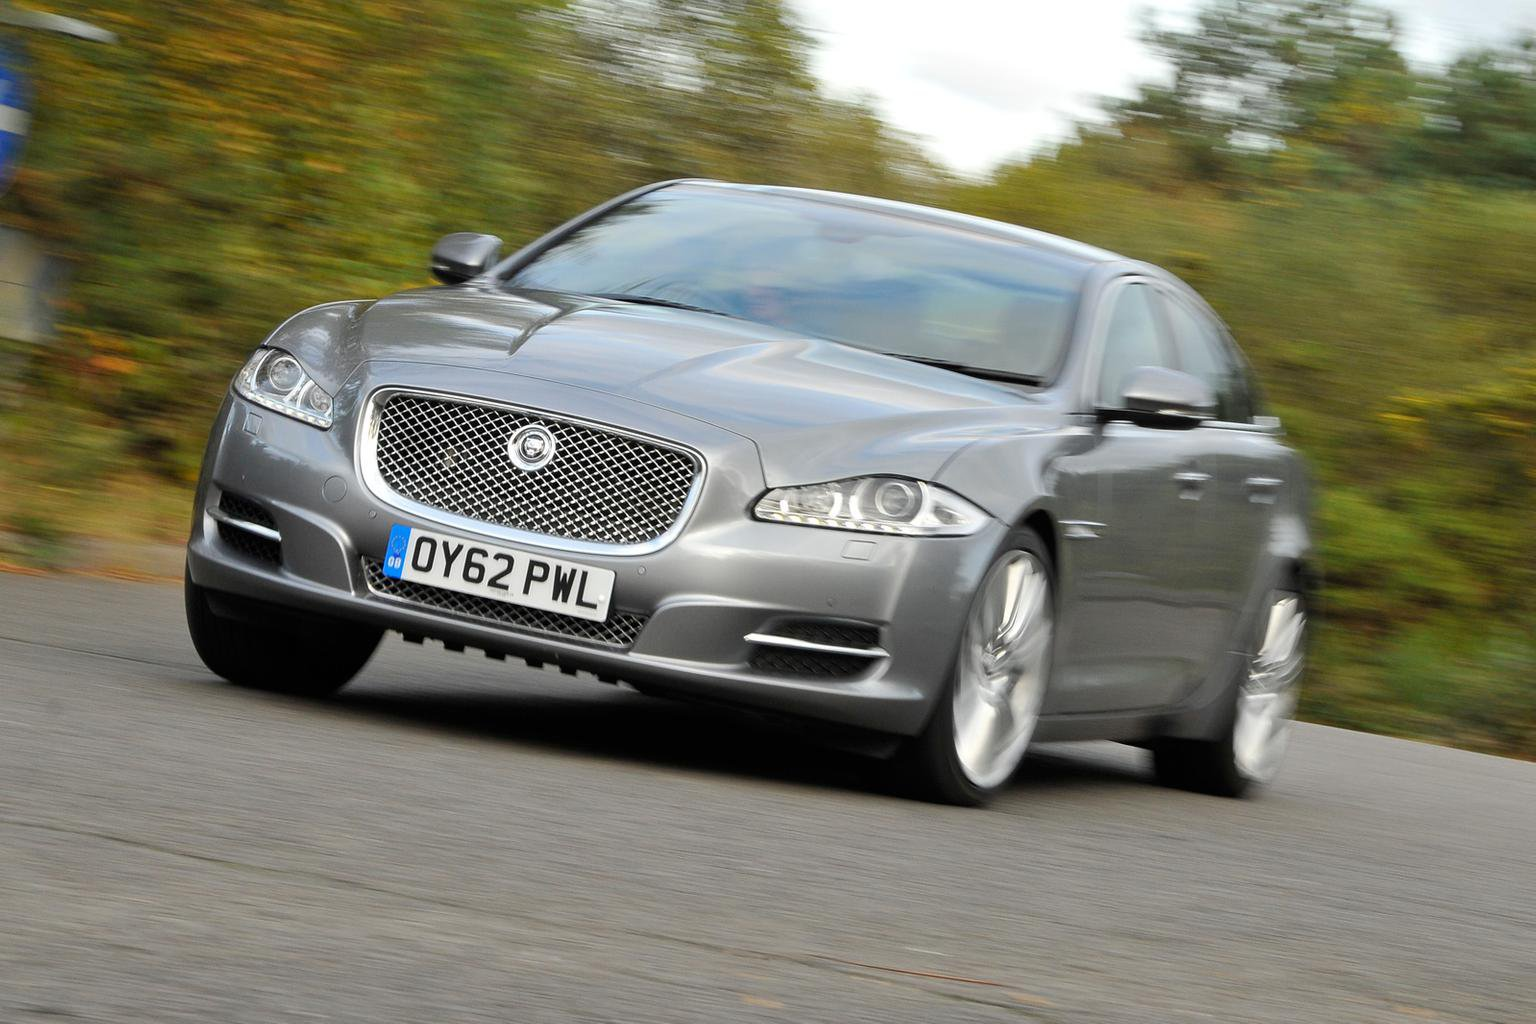 Deal of the day: Jaguar XJ